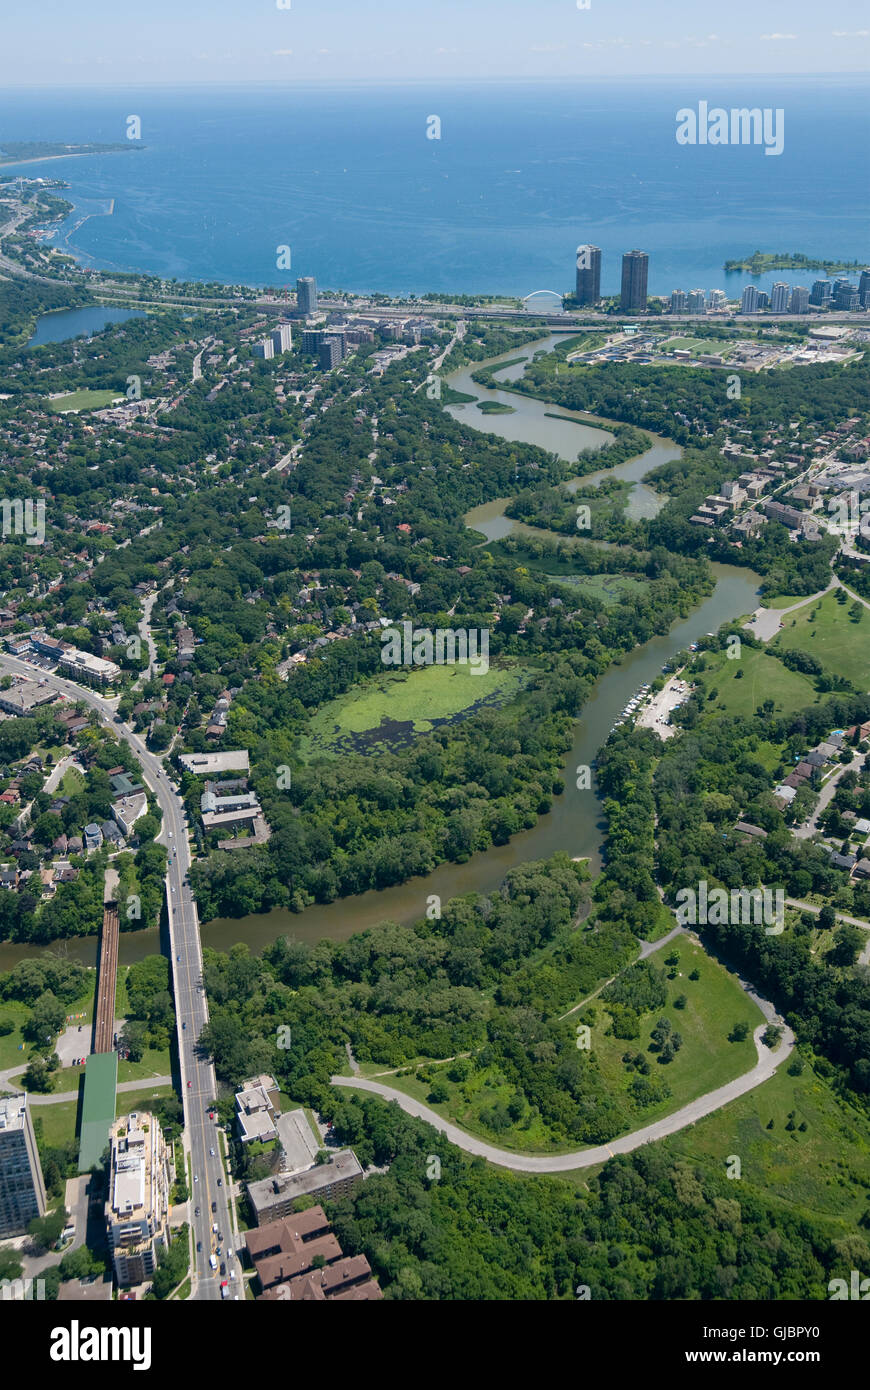 The lower reaches of Toronto's Humber River, with Lake Ontario visible in the background. Shot from above Bloor - Stock Image